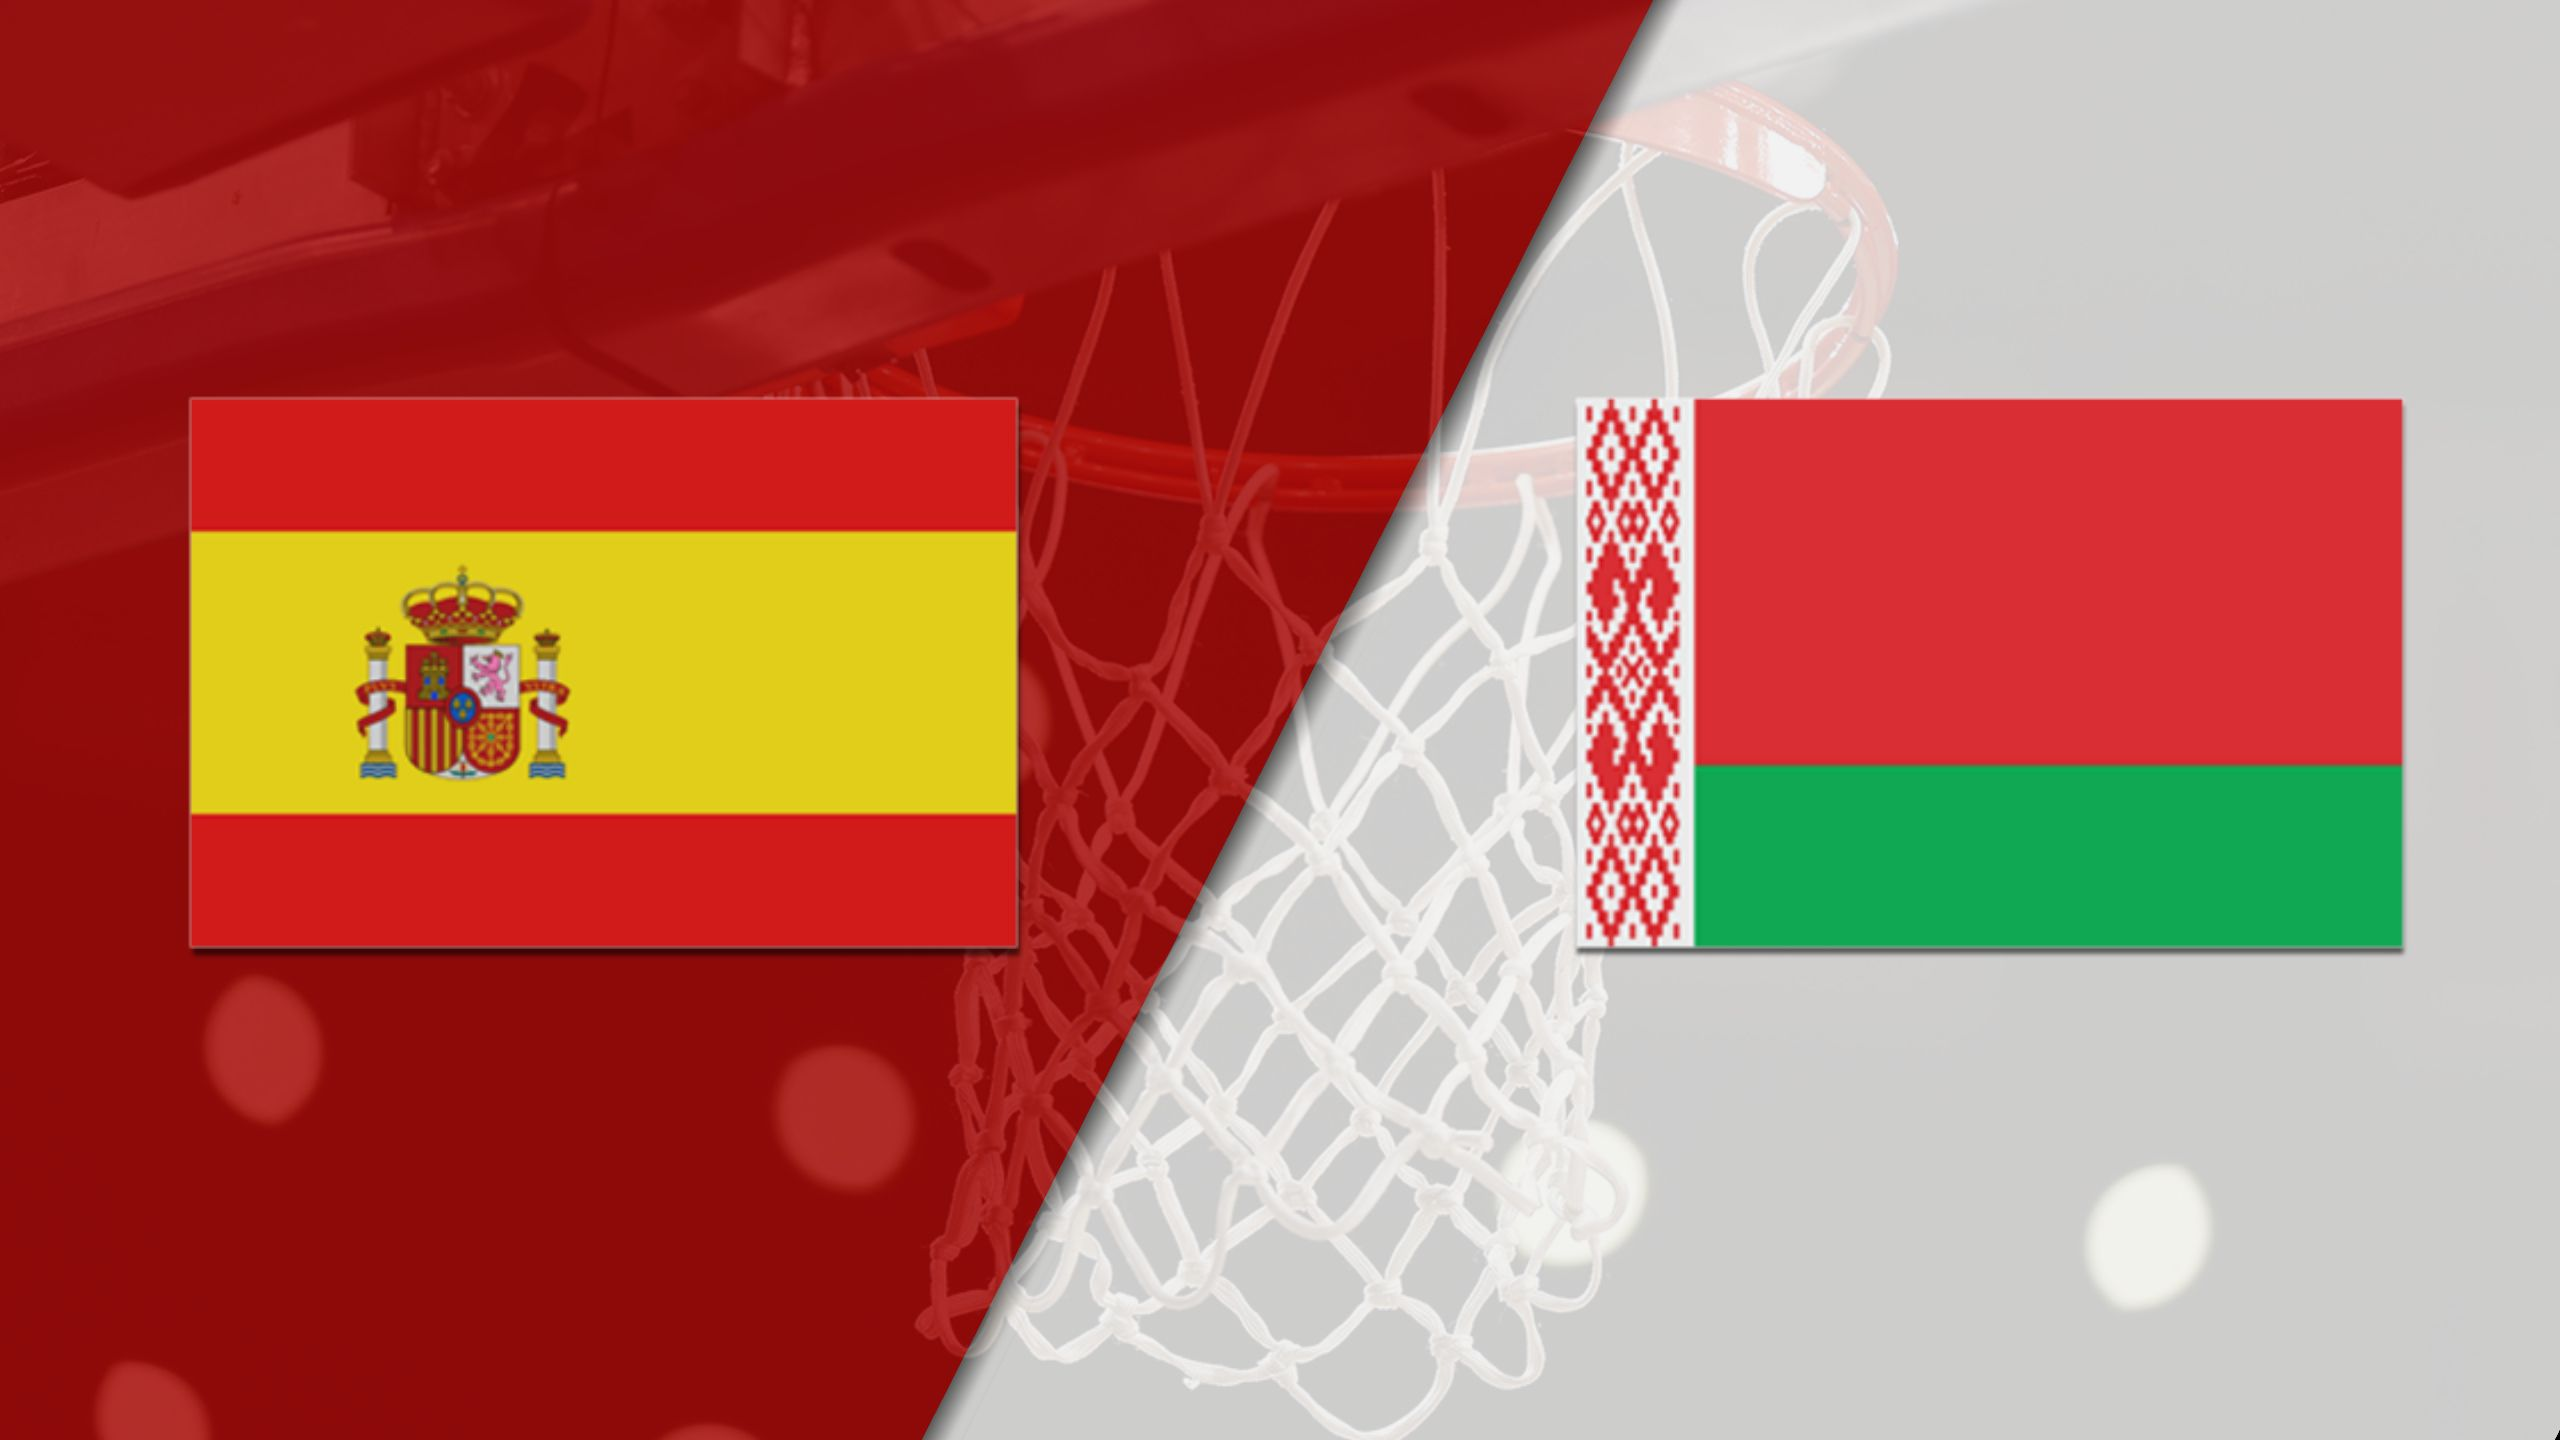 Spain vs. Belarus (FIBA World Cup 2019 Qualifier)